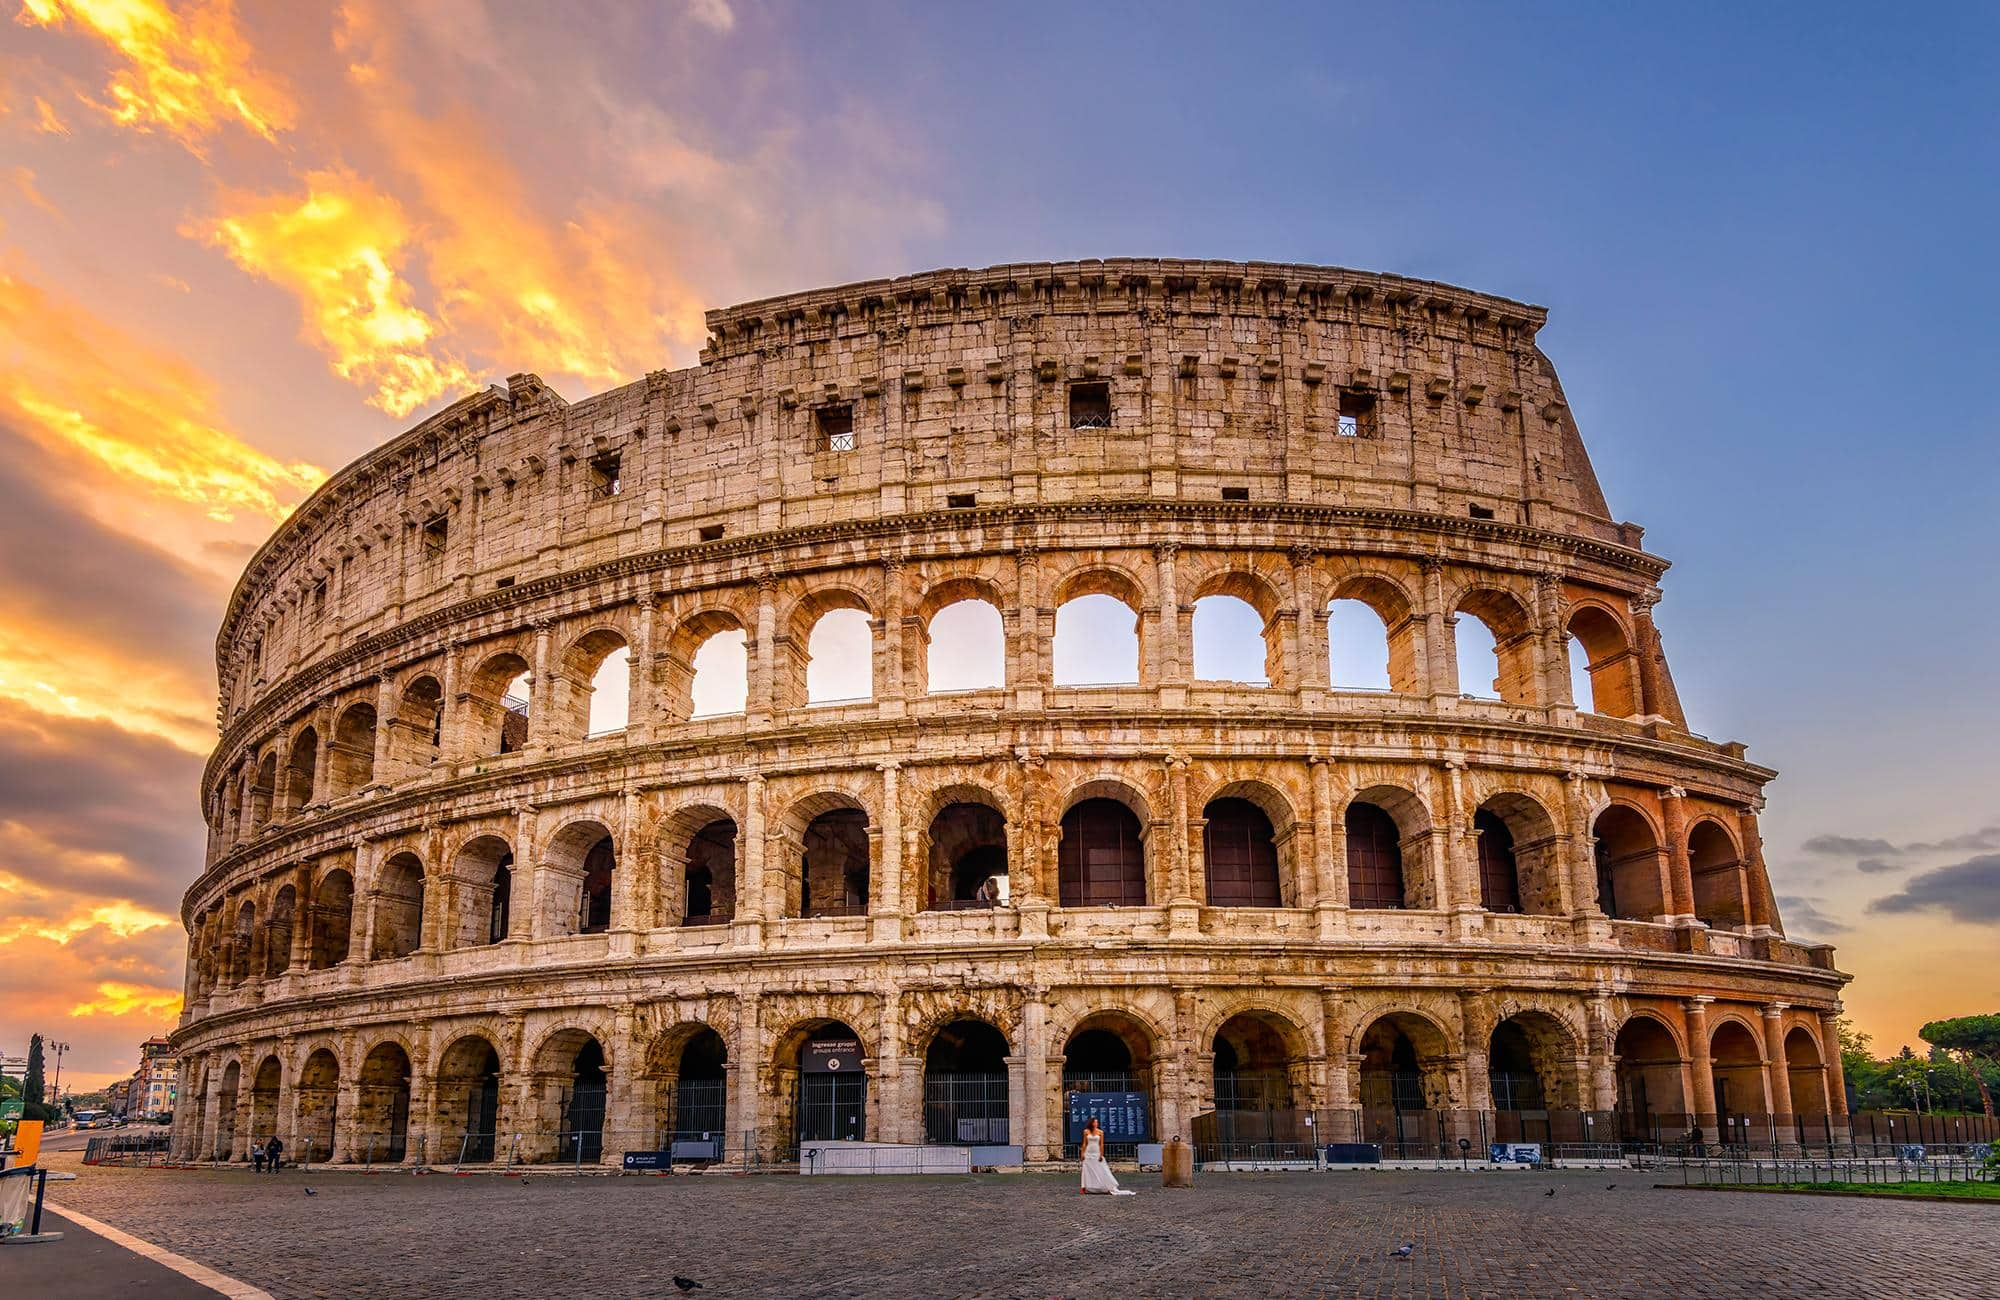 Los Angeles to Rome Italy $303-$331 RT Airfares Swiss / Lufthansa (Limited Travel Aug-October 2020)